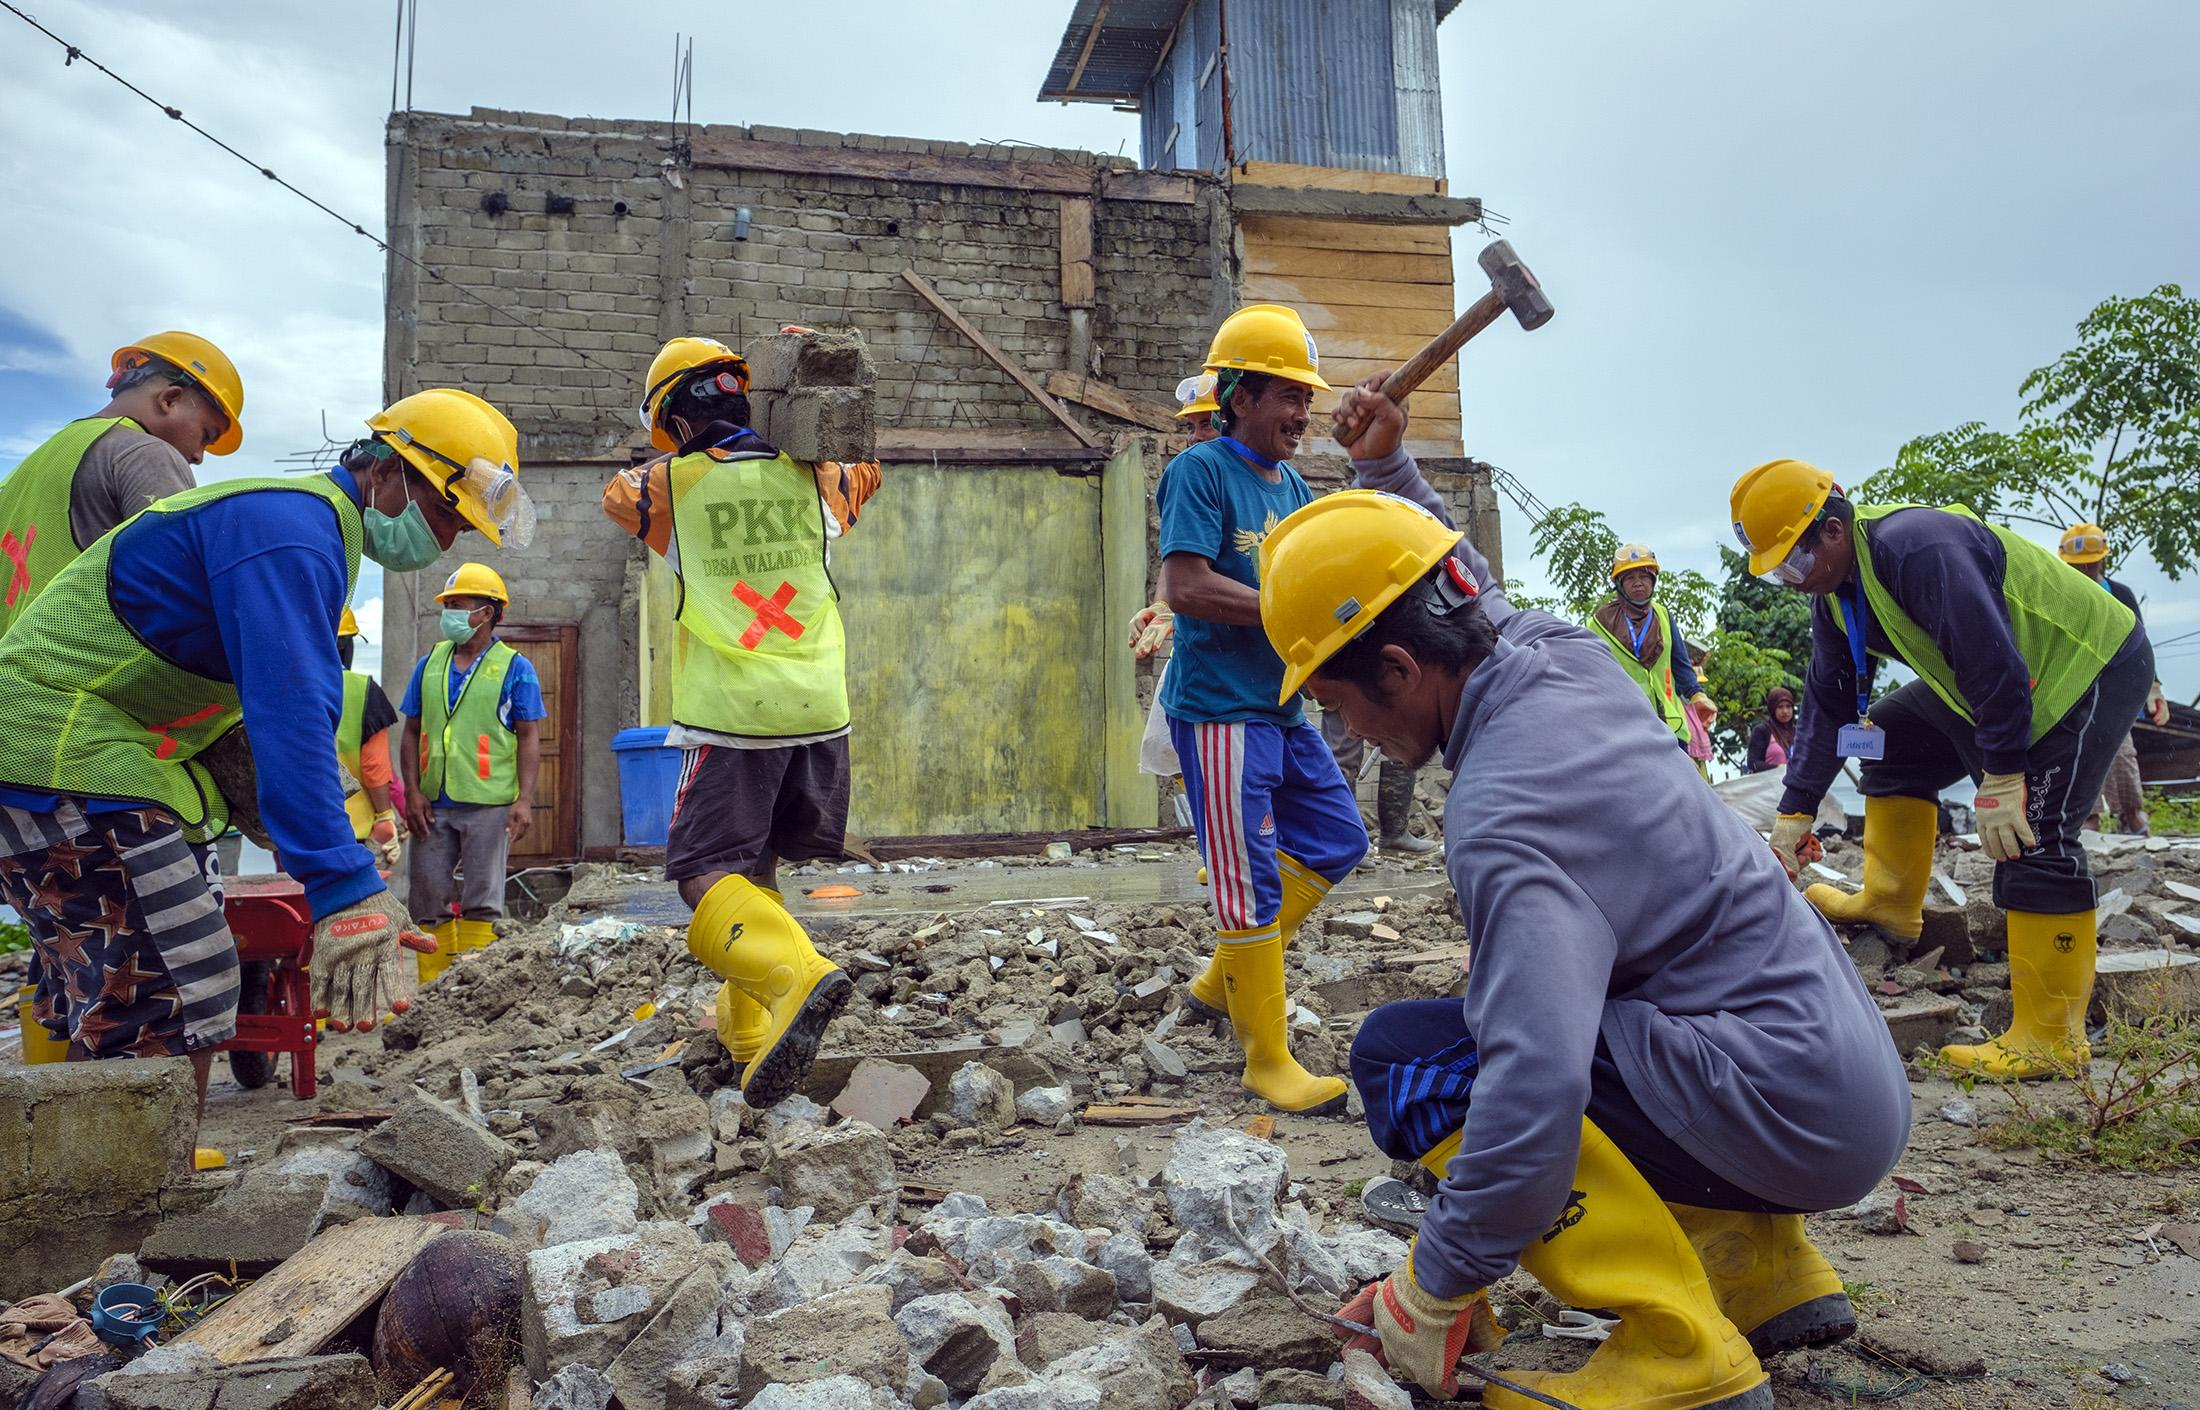 Debris from a collapsed building being removed next to a newly created Child Friendly Space built and supported by Save the Children Village in Walandanu in Donggala region, Central Sulawesi, Indonesia, February 25,  2019.